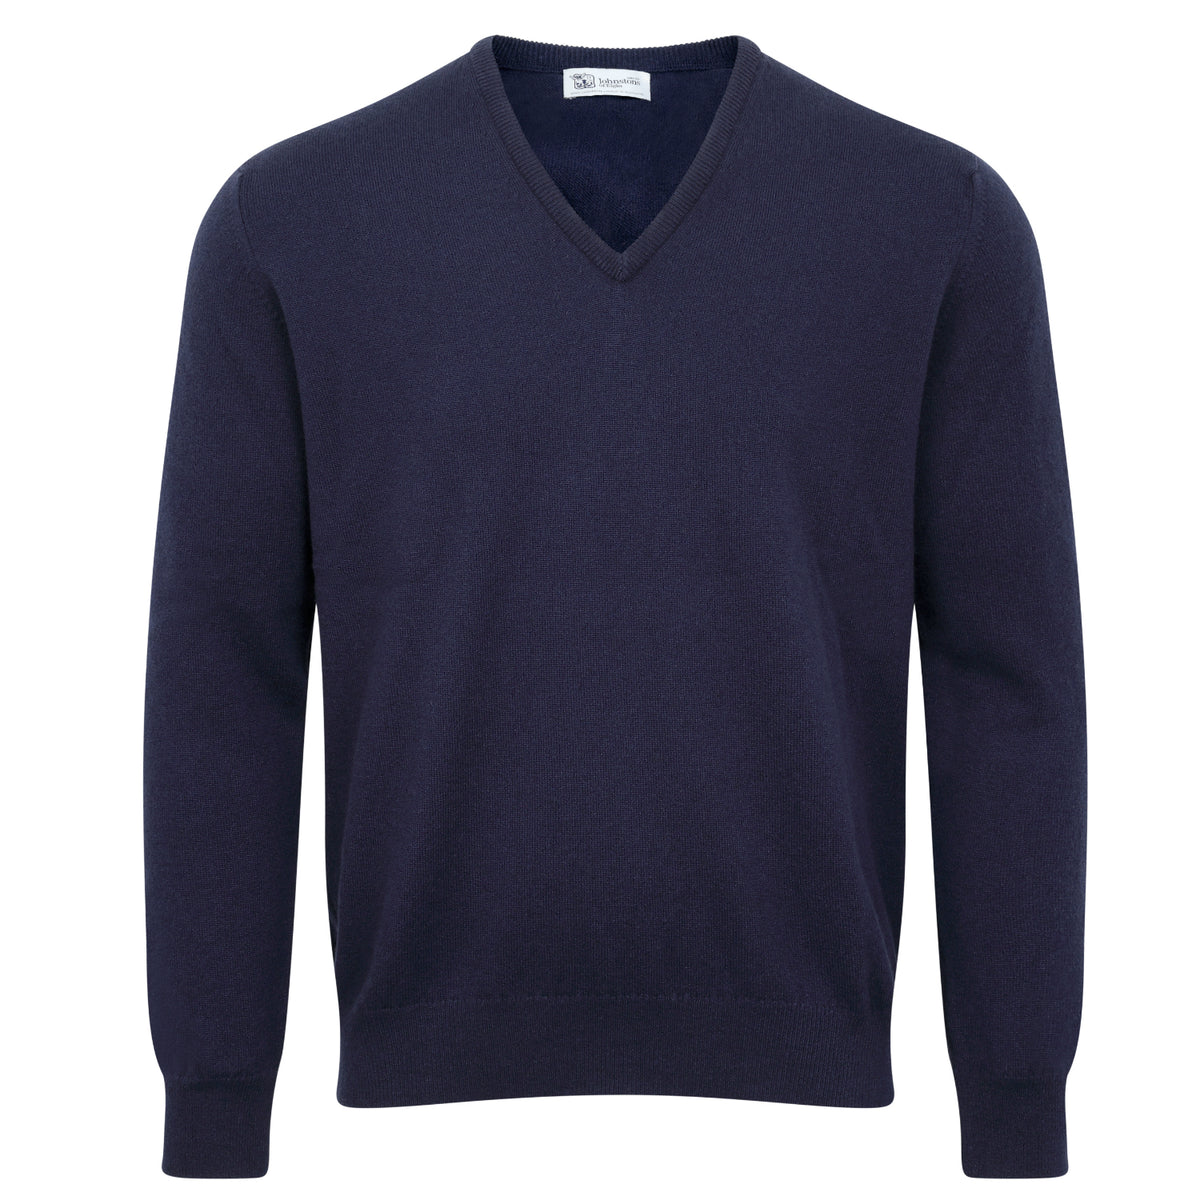 Johnstons of Elgin | Mens 2-Ply Cashmere V Neck | Navy Blue | Shop now at The Cashmere Choice | London